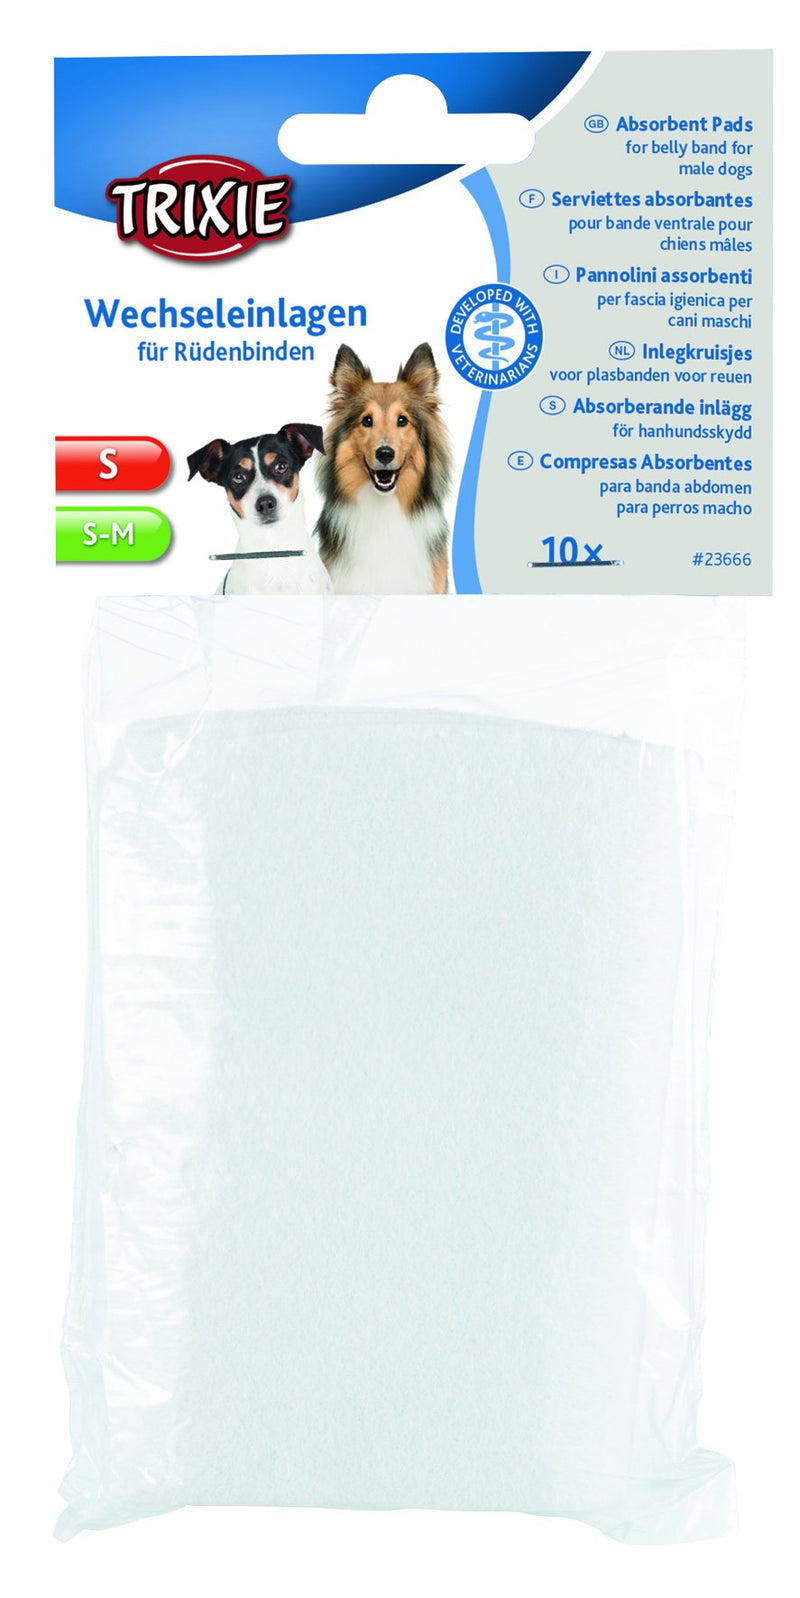 23666 Absorbent pads for belly band for male dogs, S, S-M, 10 pcs.